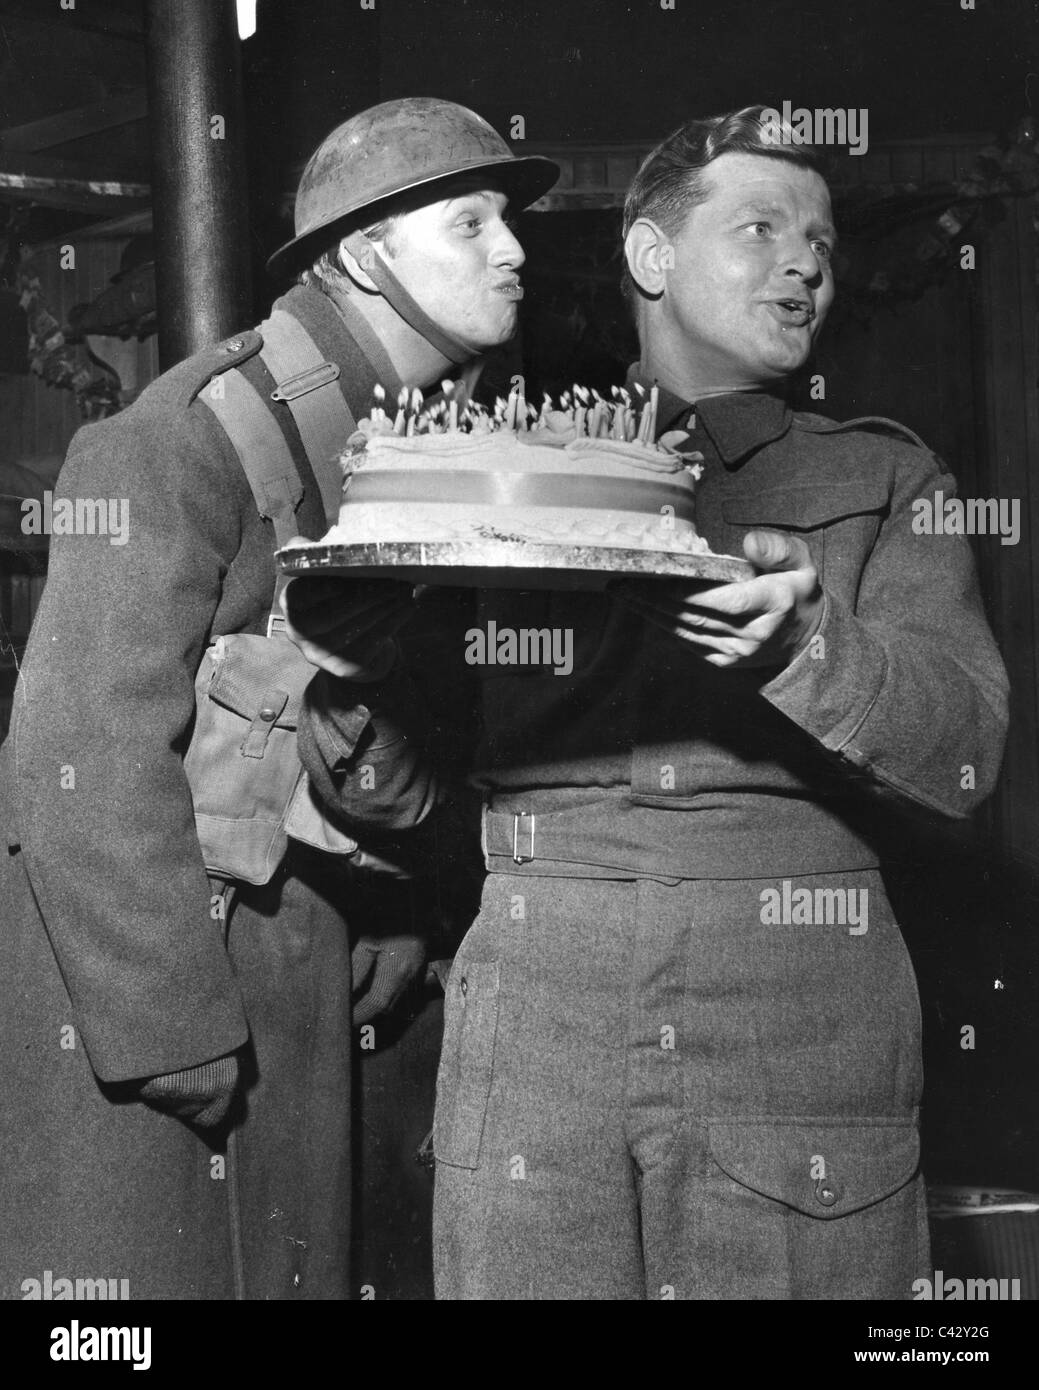 BENNY HILL Holds His 36th Birthday Cake On Set Of 1960 Film Light Up The Sky With Tommy Steele At Left